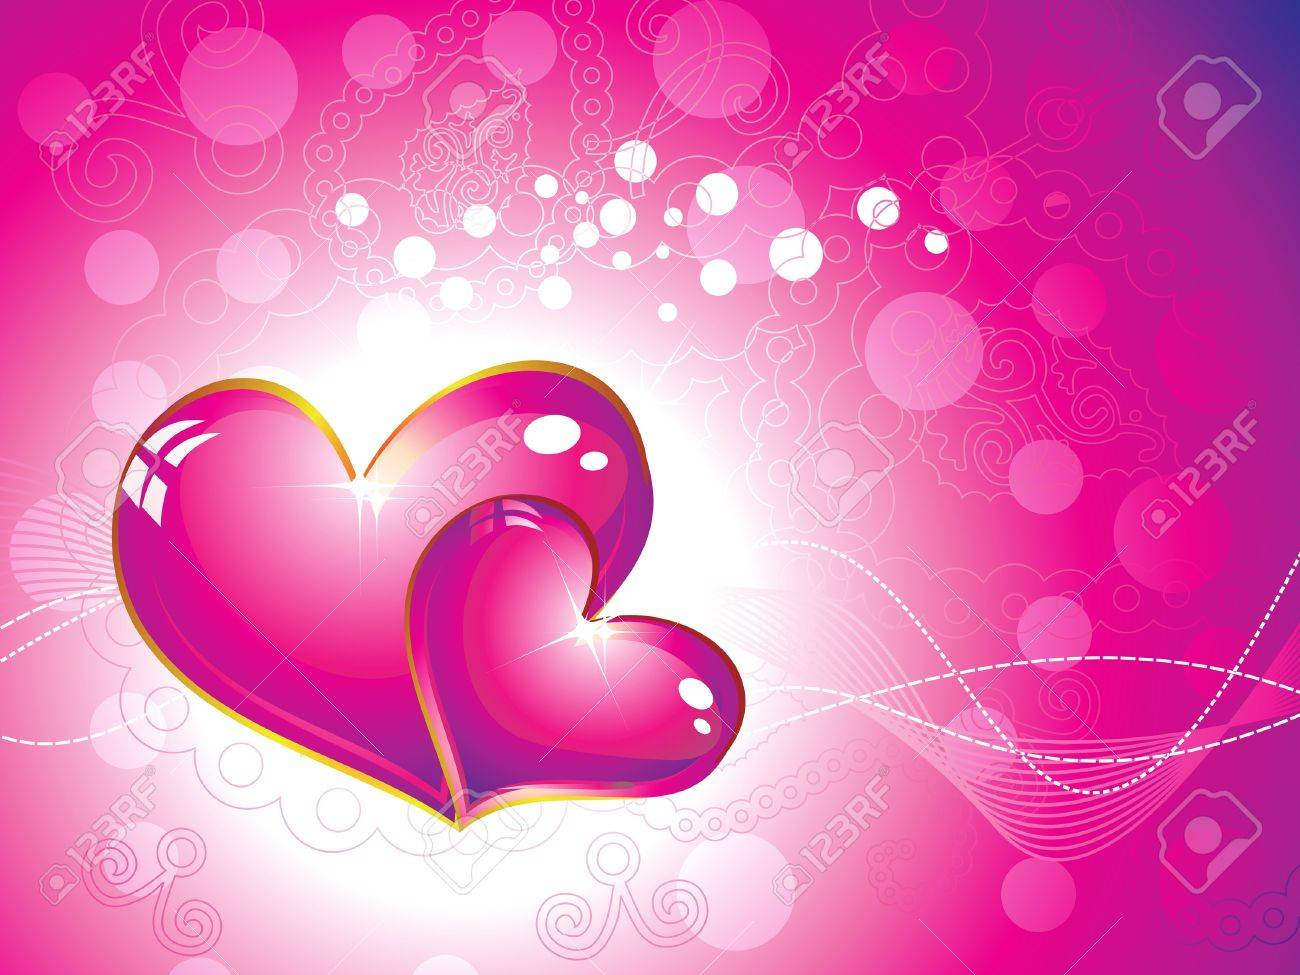 abstract pink heart wallpaper illustration royalty free cliparts